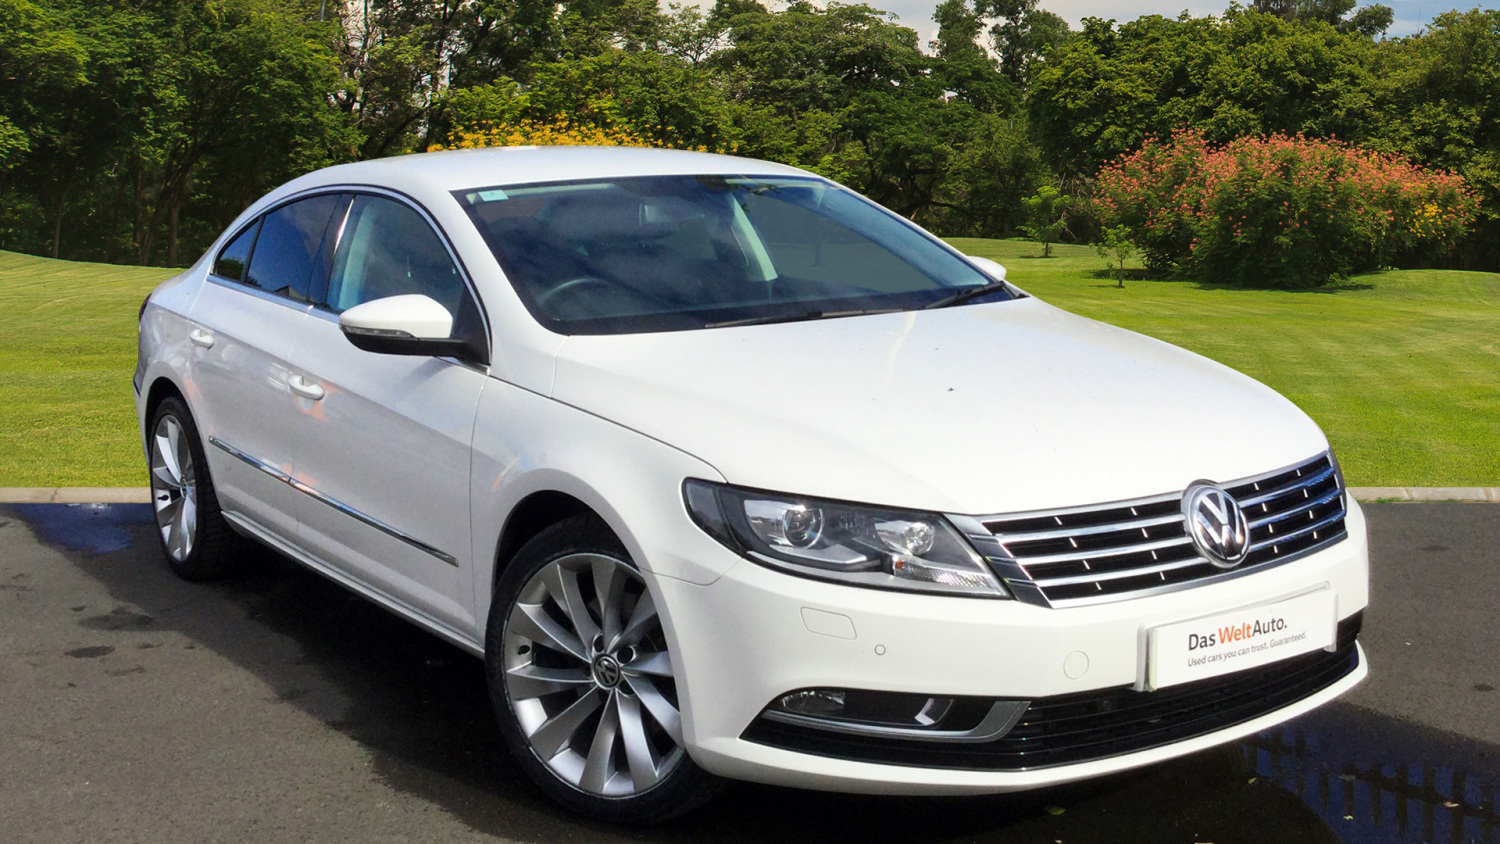 used volkswagen cc 2 0 tdi bluemotion tech gt 4dr diesel saloon for sale vertu volkswagen. Black Bedroom Furniture Sets. Home Design Ideas